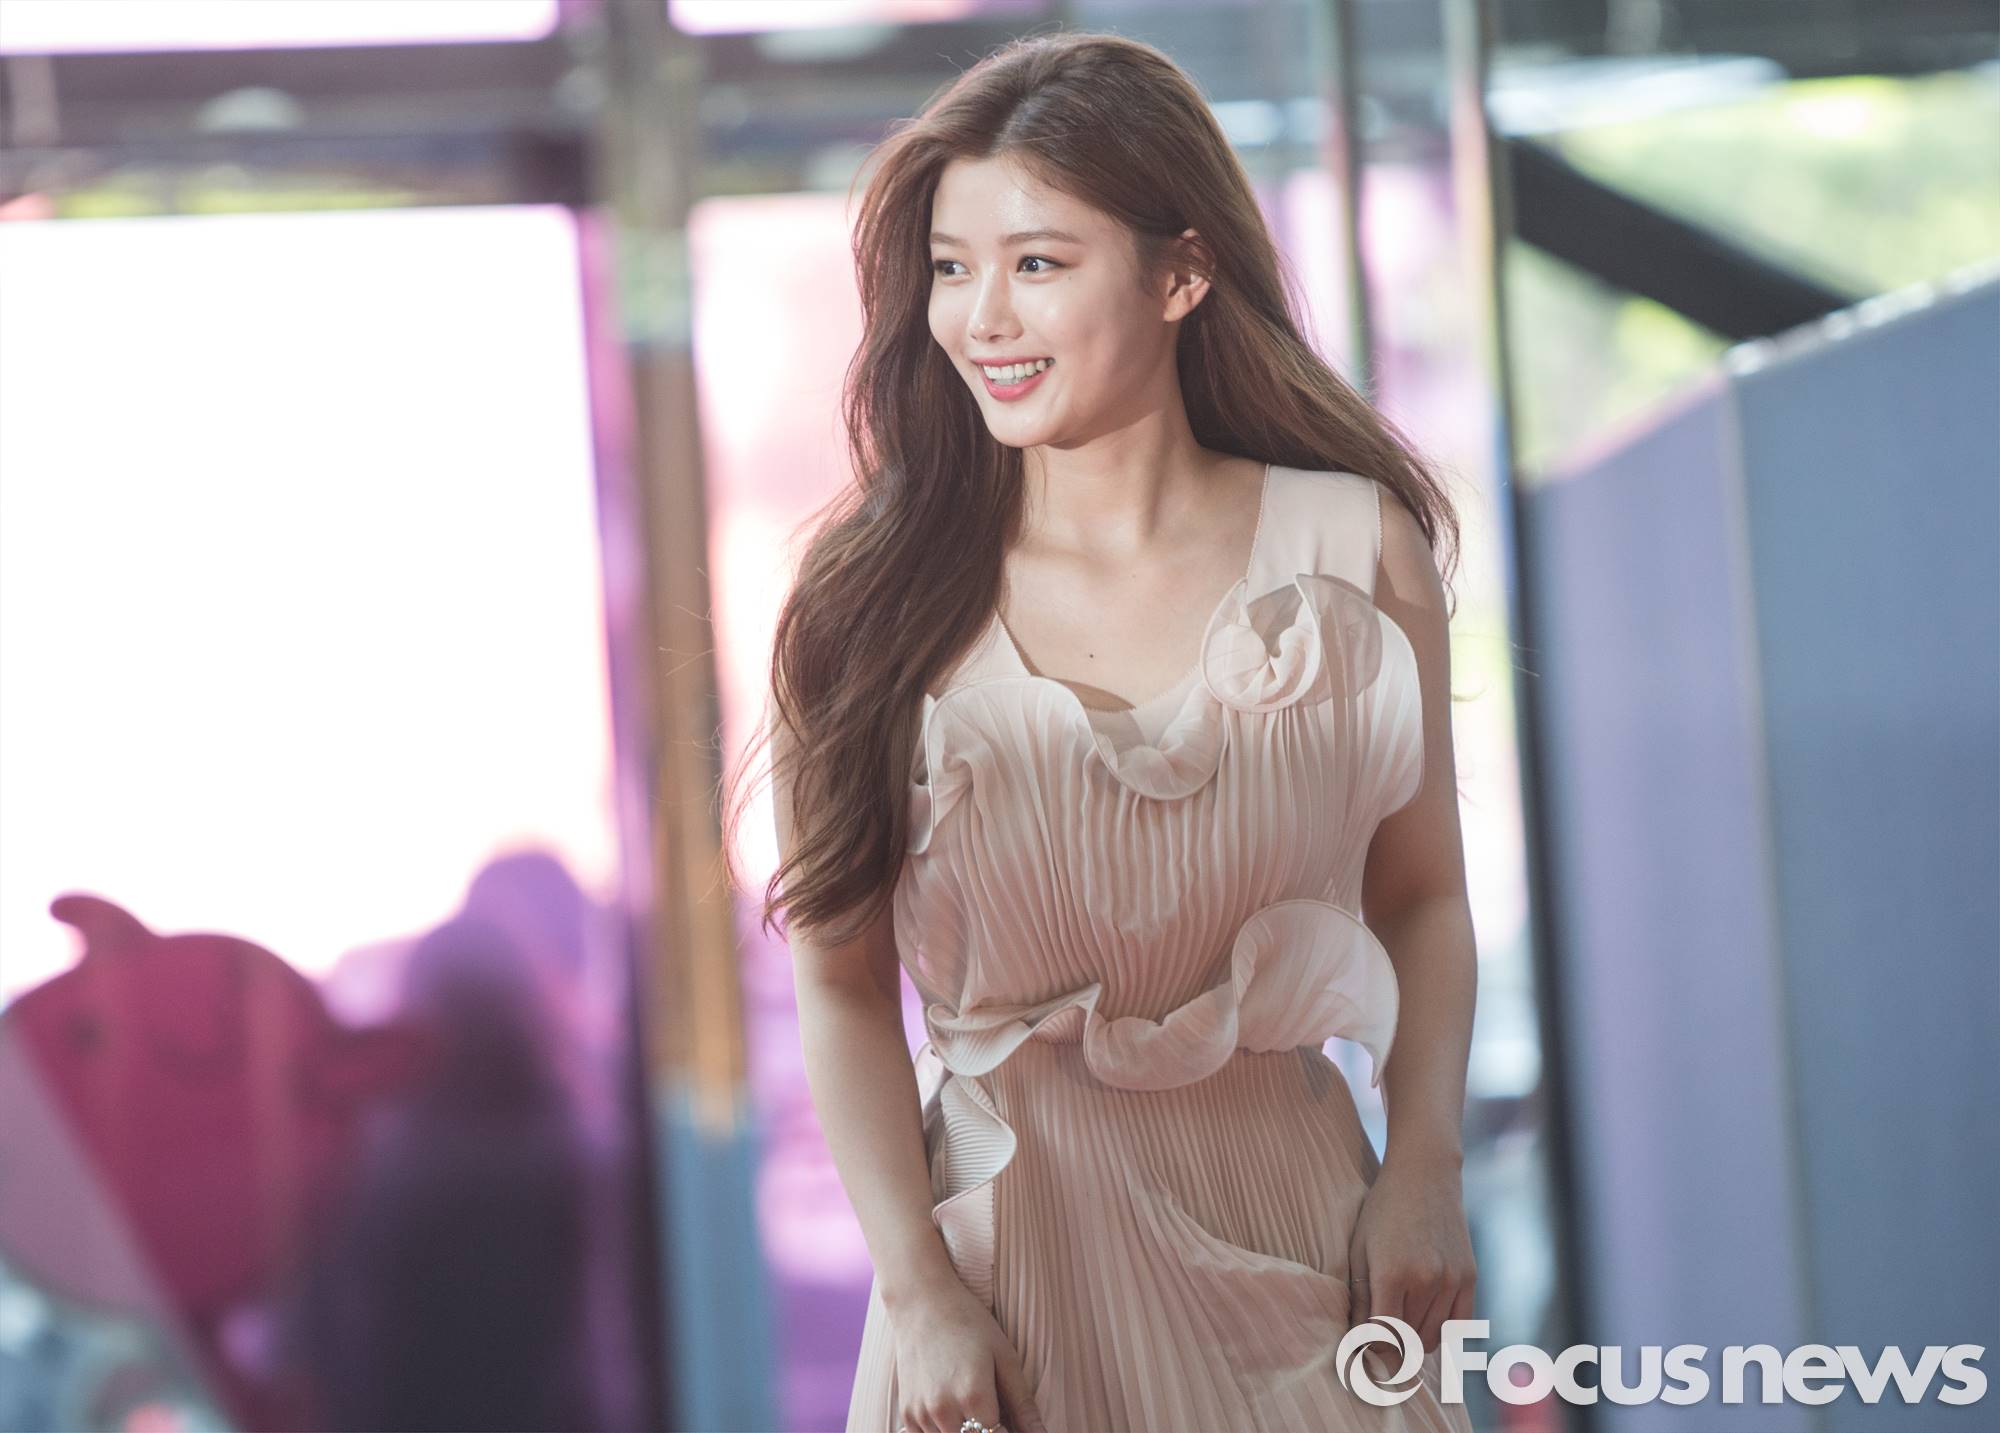 Actress Kim Yoo Jung Looks Like A Million Pounds At The